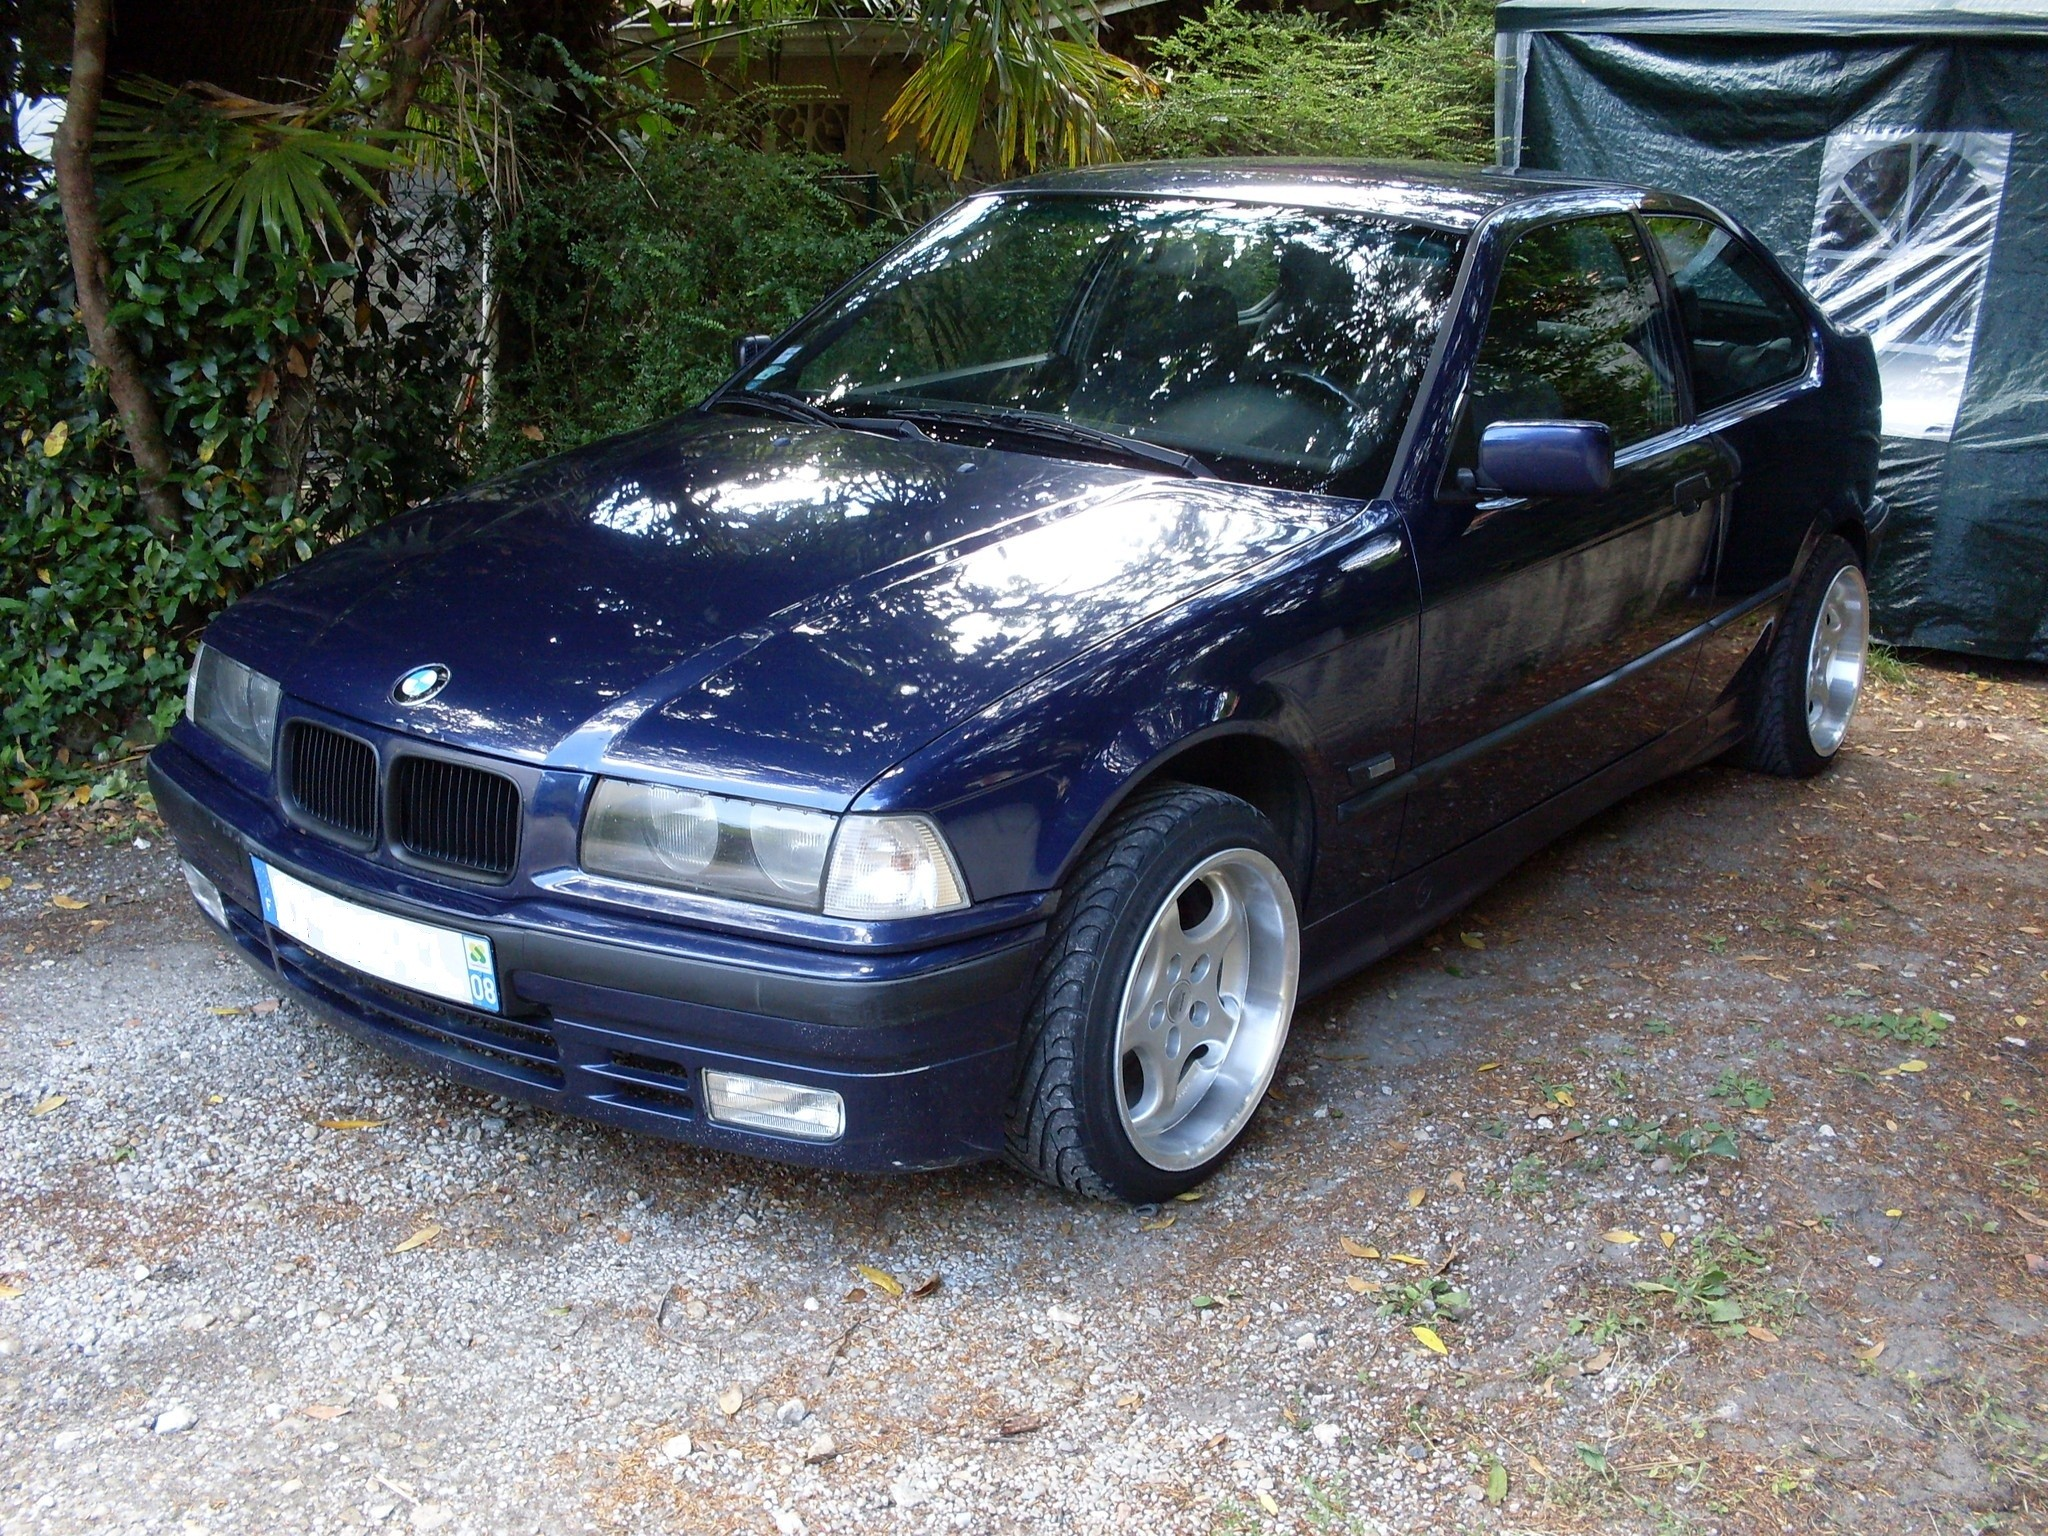 restauration bmw e36 compact futur modif en cours auto titre. Black Bedroom Furniture Sets. Home Design Ideas